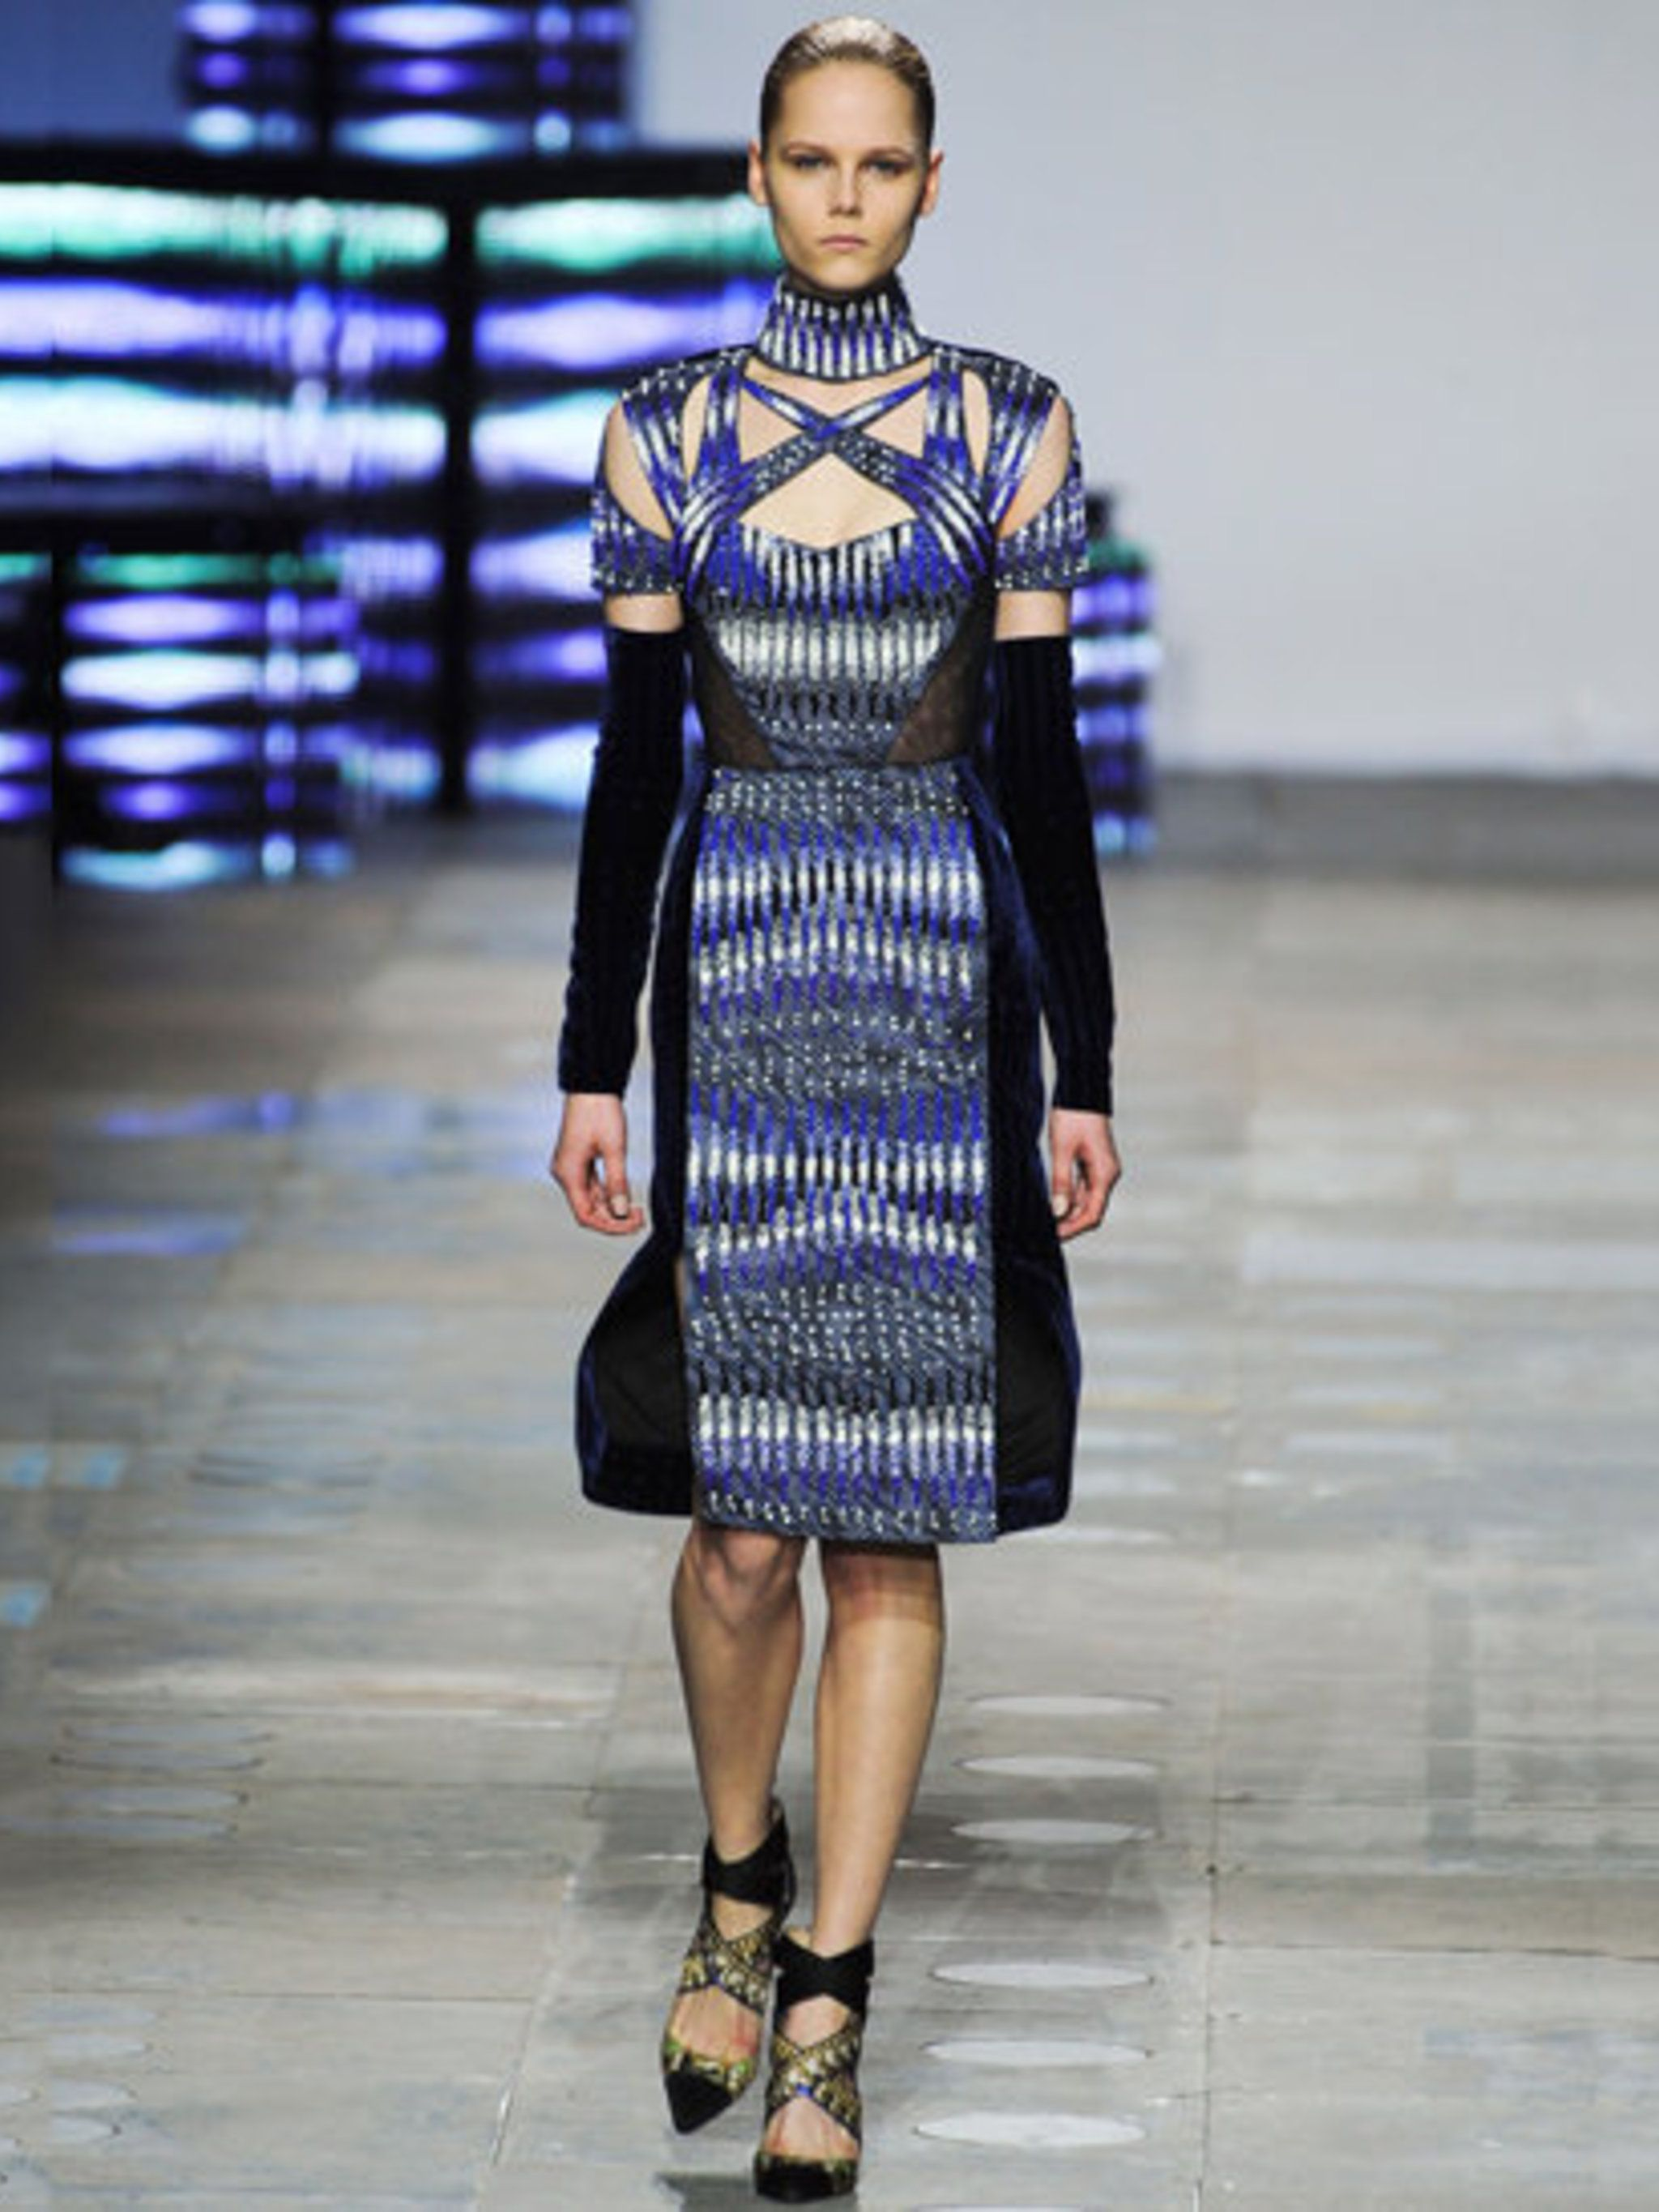 <p>Peter Pilotto AW 12 look, later customised for Gwen Stefani </p>